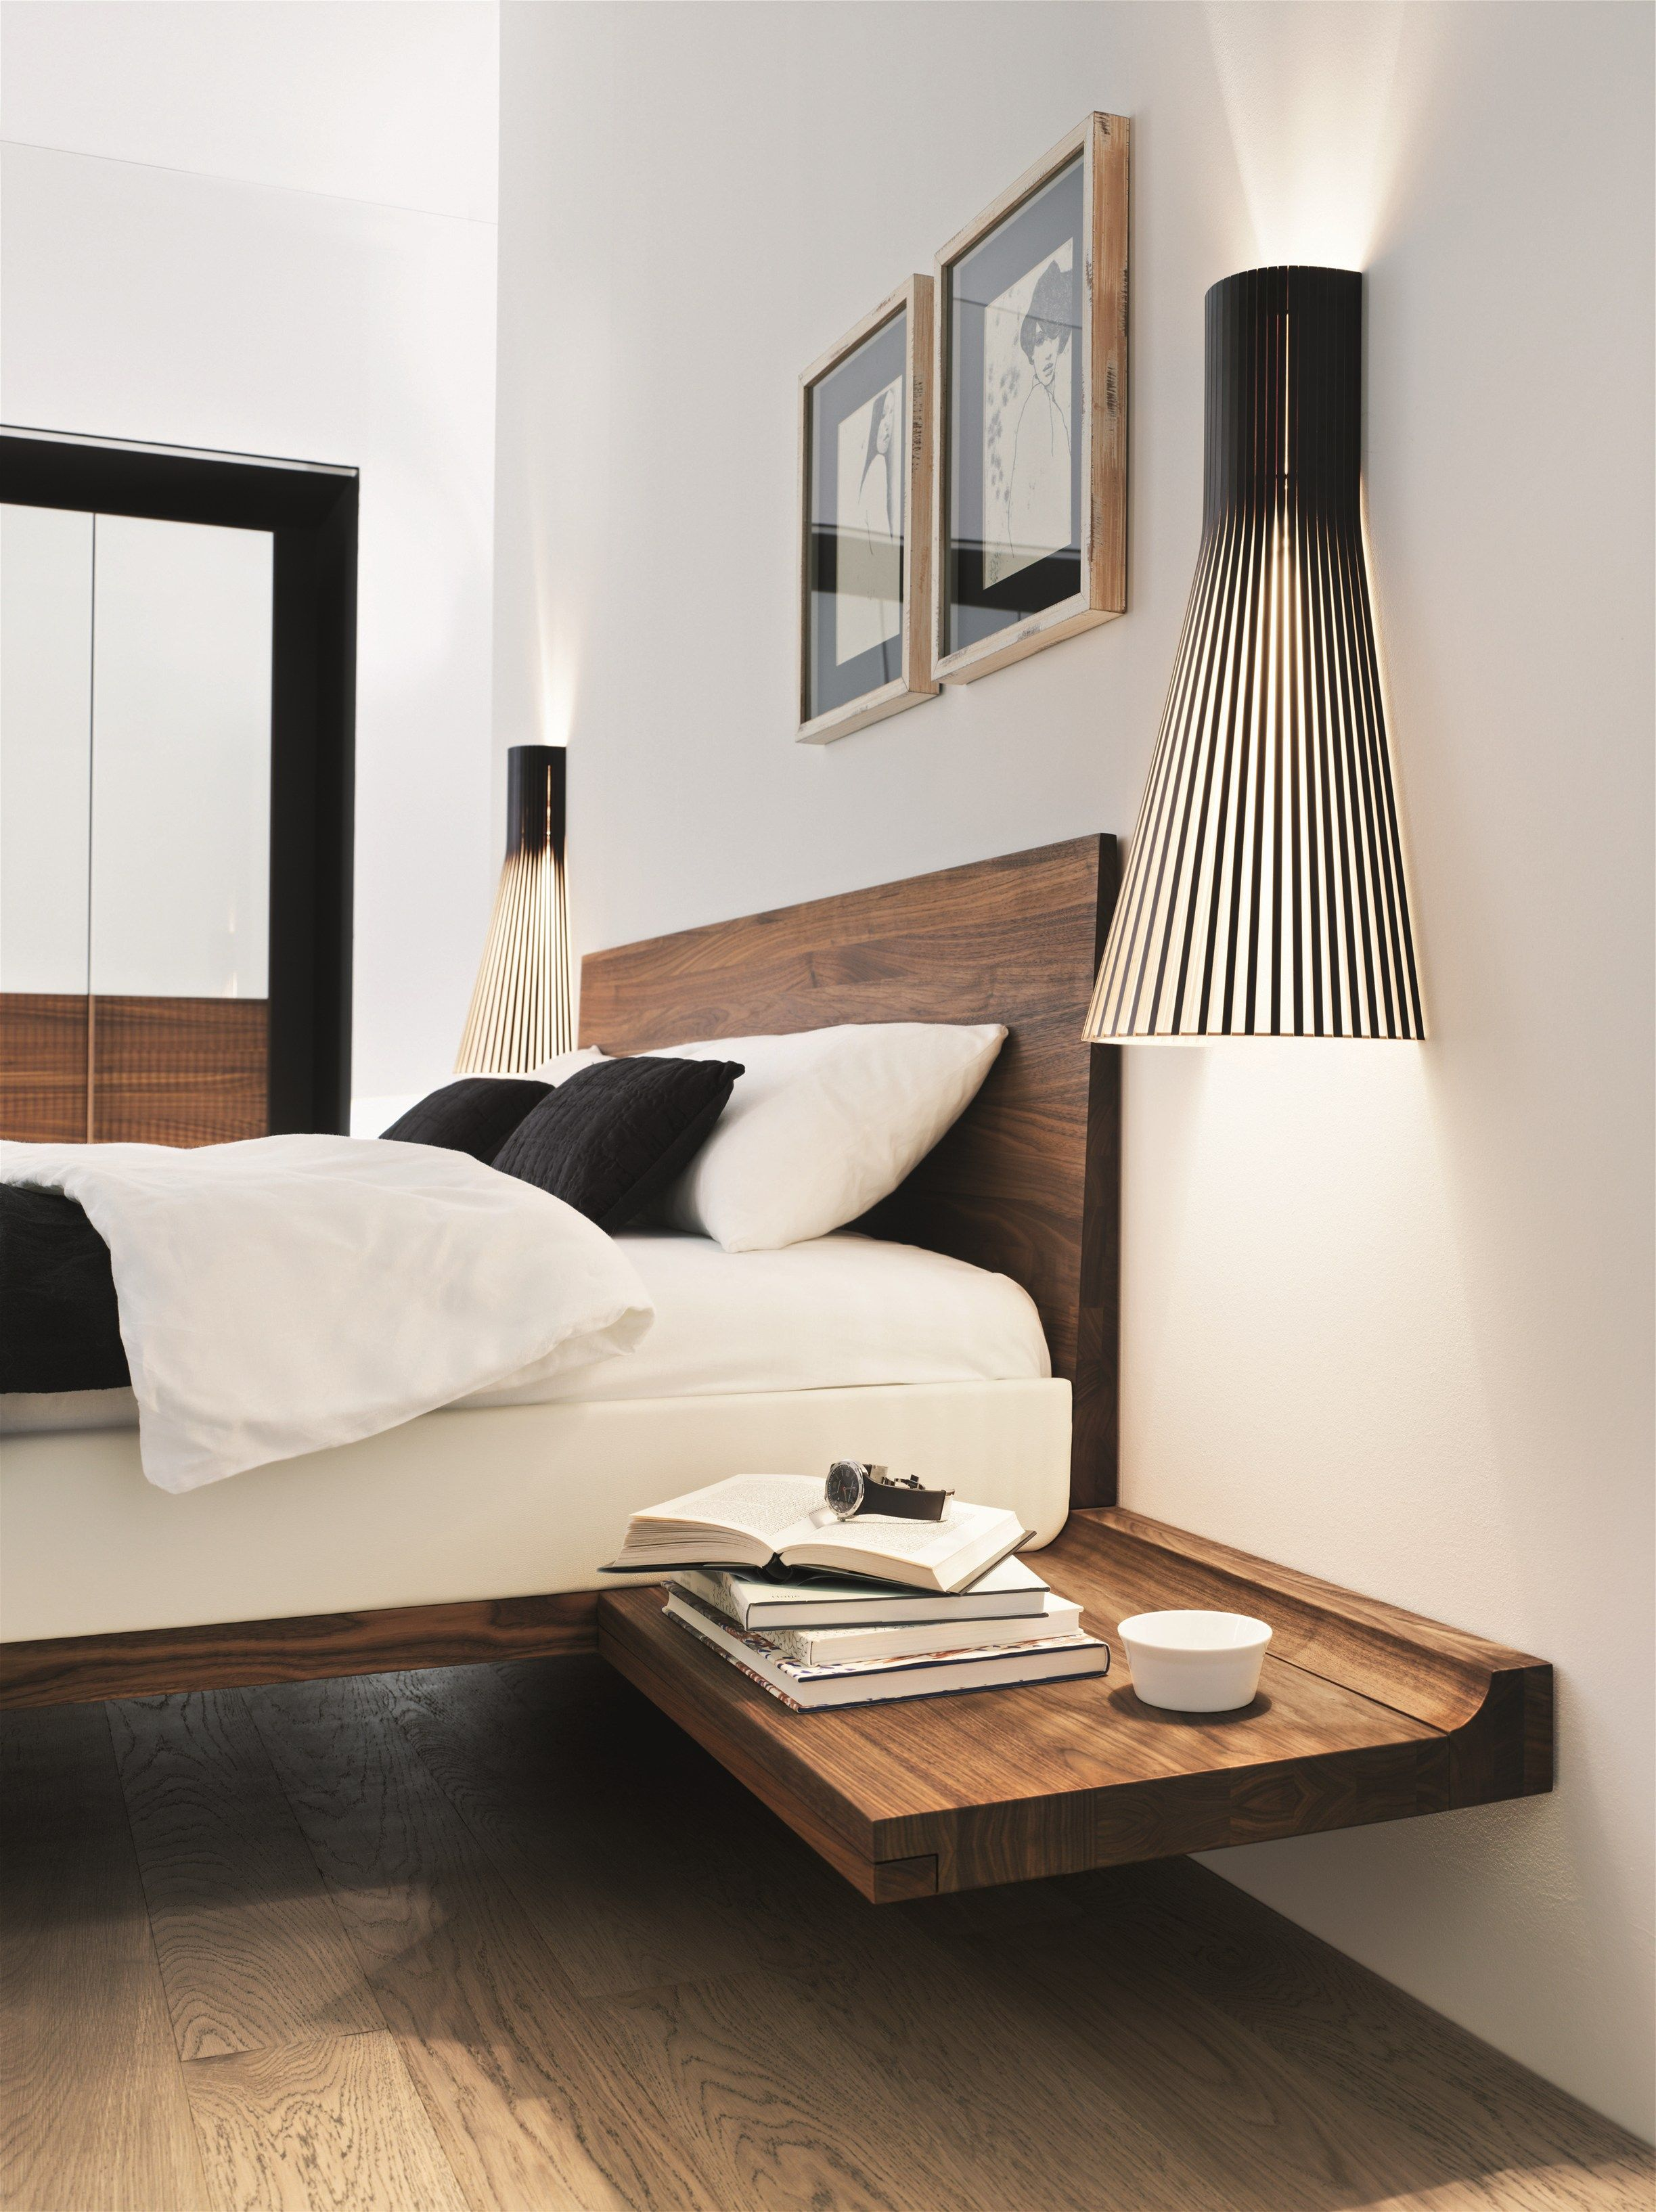 SOLID WOOD DOUBLE BED RILETTO RILETTO COLLECTION